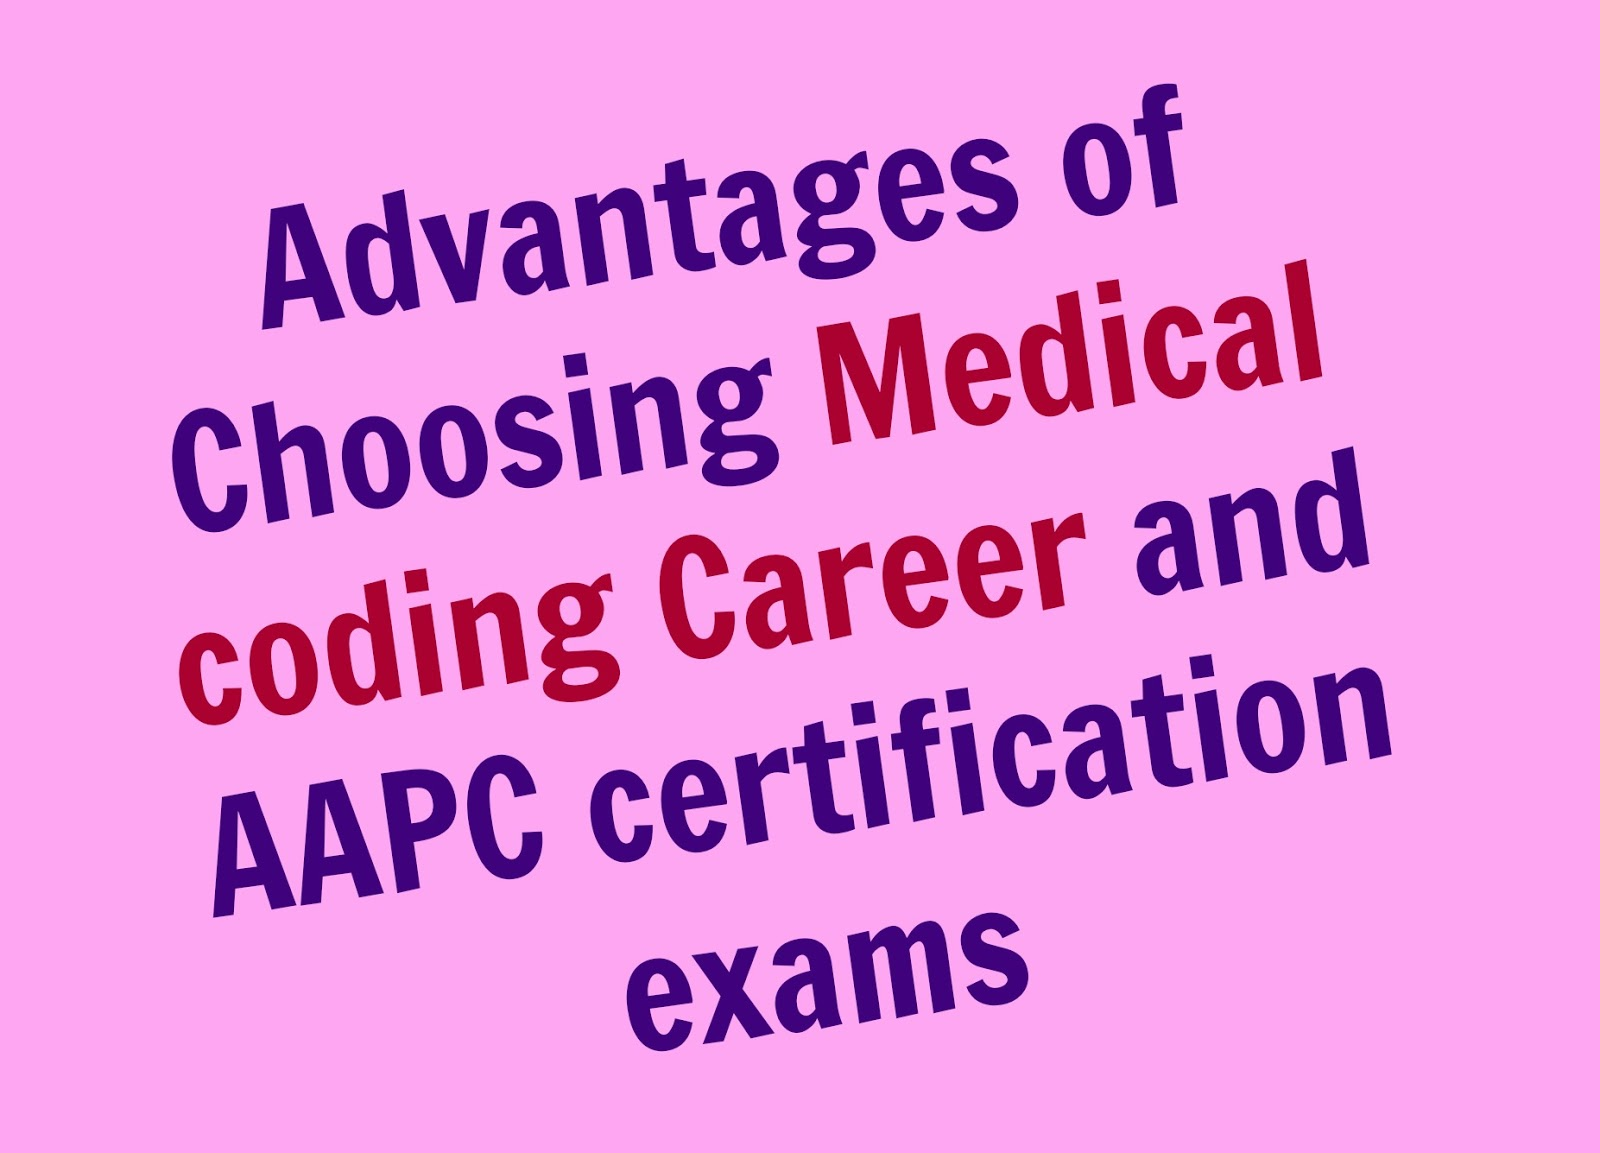 Advantages of choosing medical coding career and aapc advantages of choosing medical coding career and aapc certification exams 1betcityfo Gallery